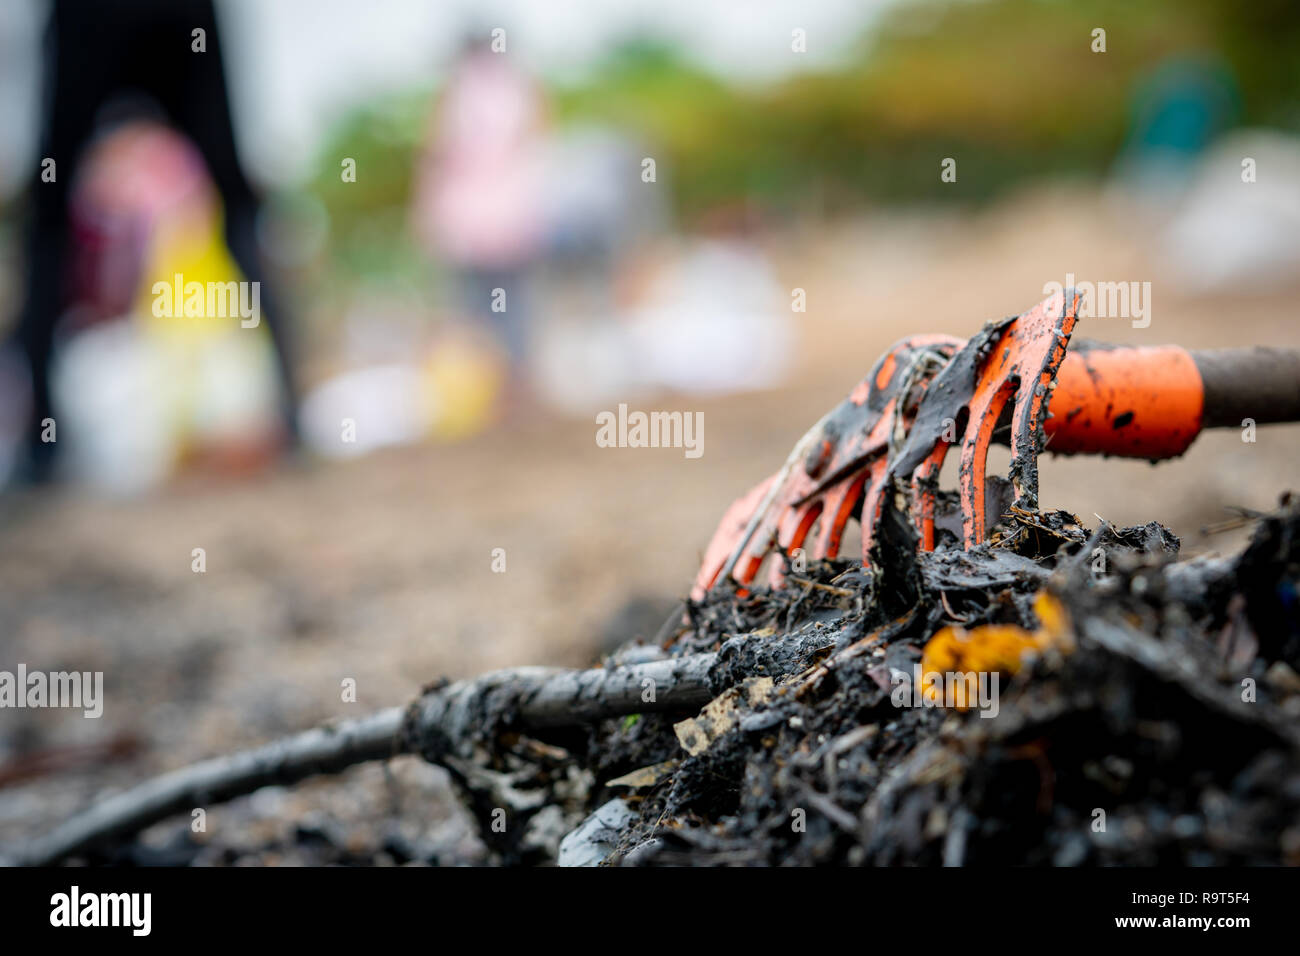 Closeup orange rake on pile of dirty waste on blurred background of volunteer clean up beach. Beach environmental pollution concept Tidying up rubbish - Stock Image